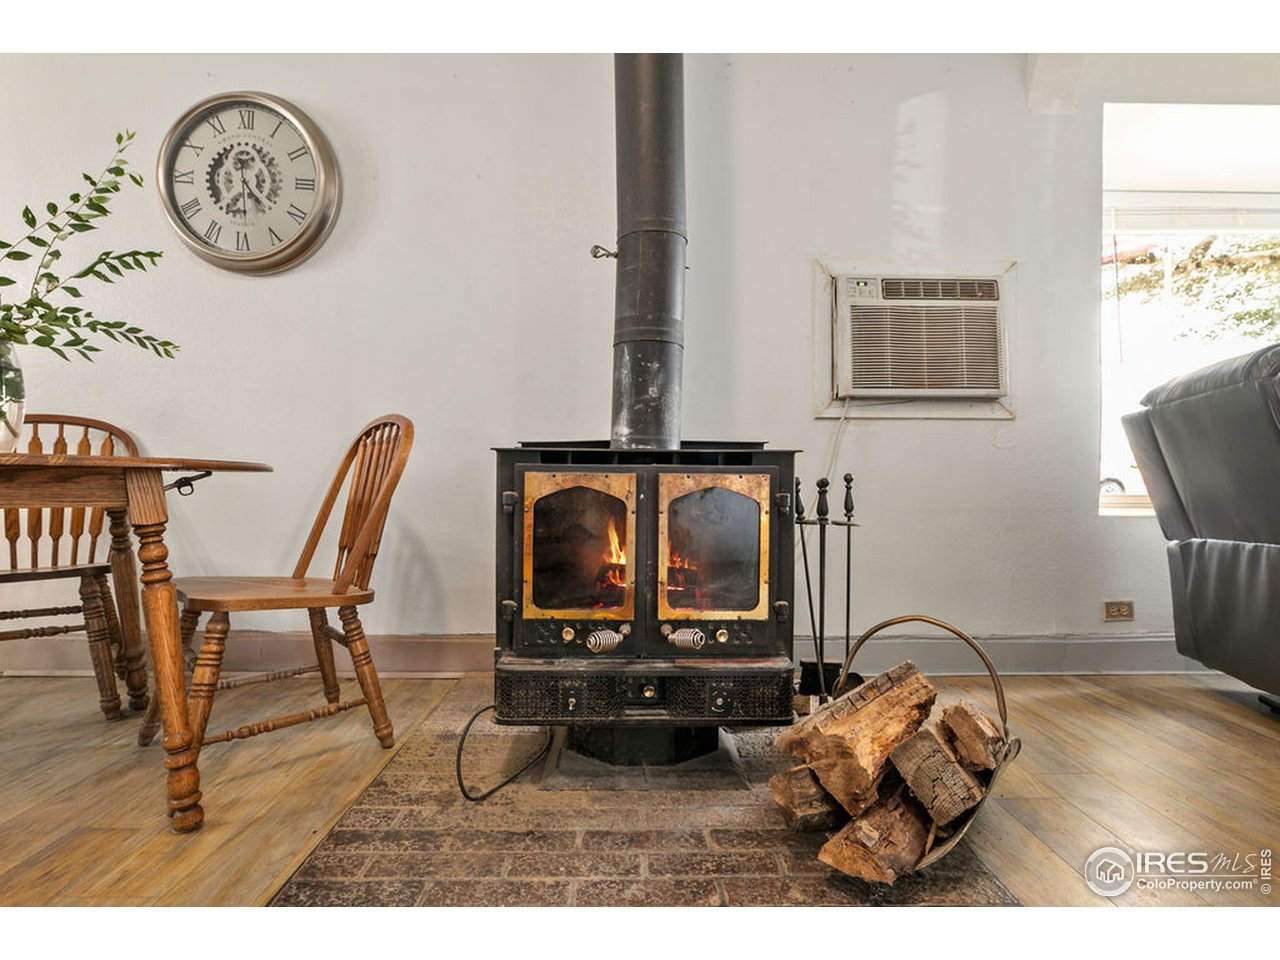 Cozy wood stove can heat the entire house, so furnace is rarely needed.